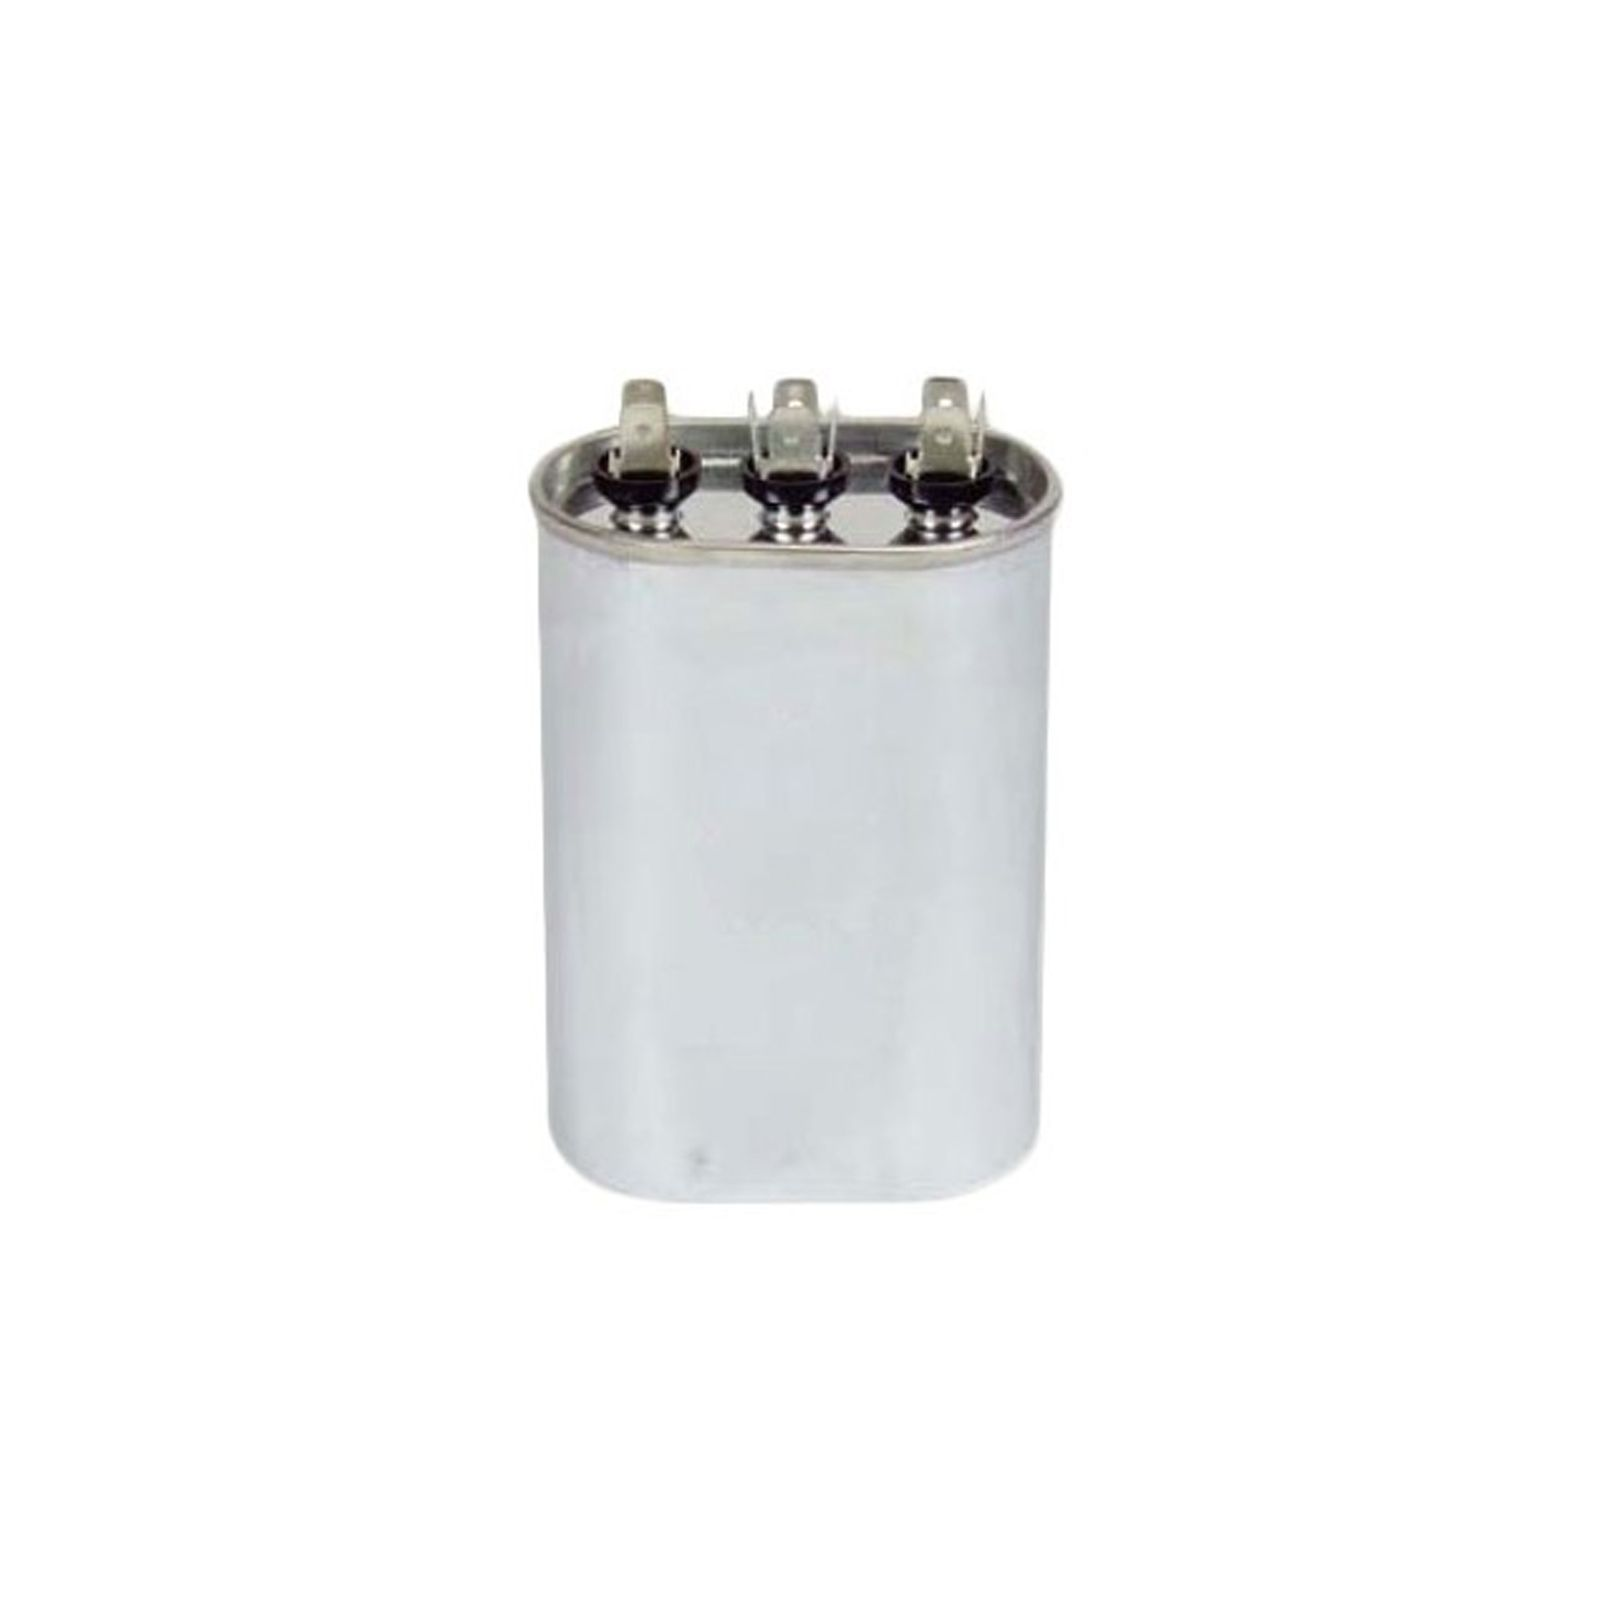 PROTECH 43-25135-15 - Capacitor - 25/3/370 Dual Oval